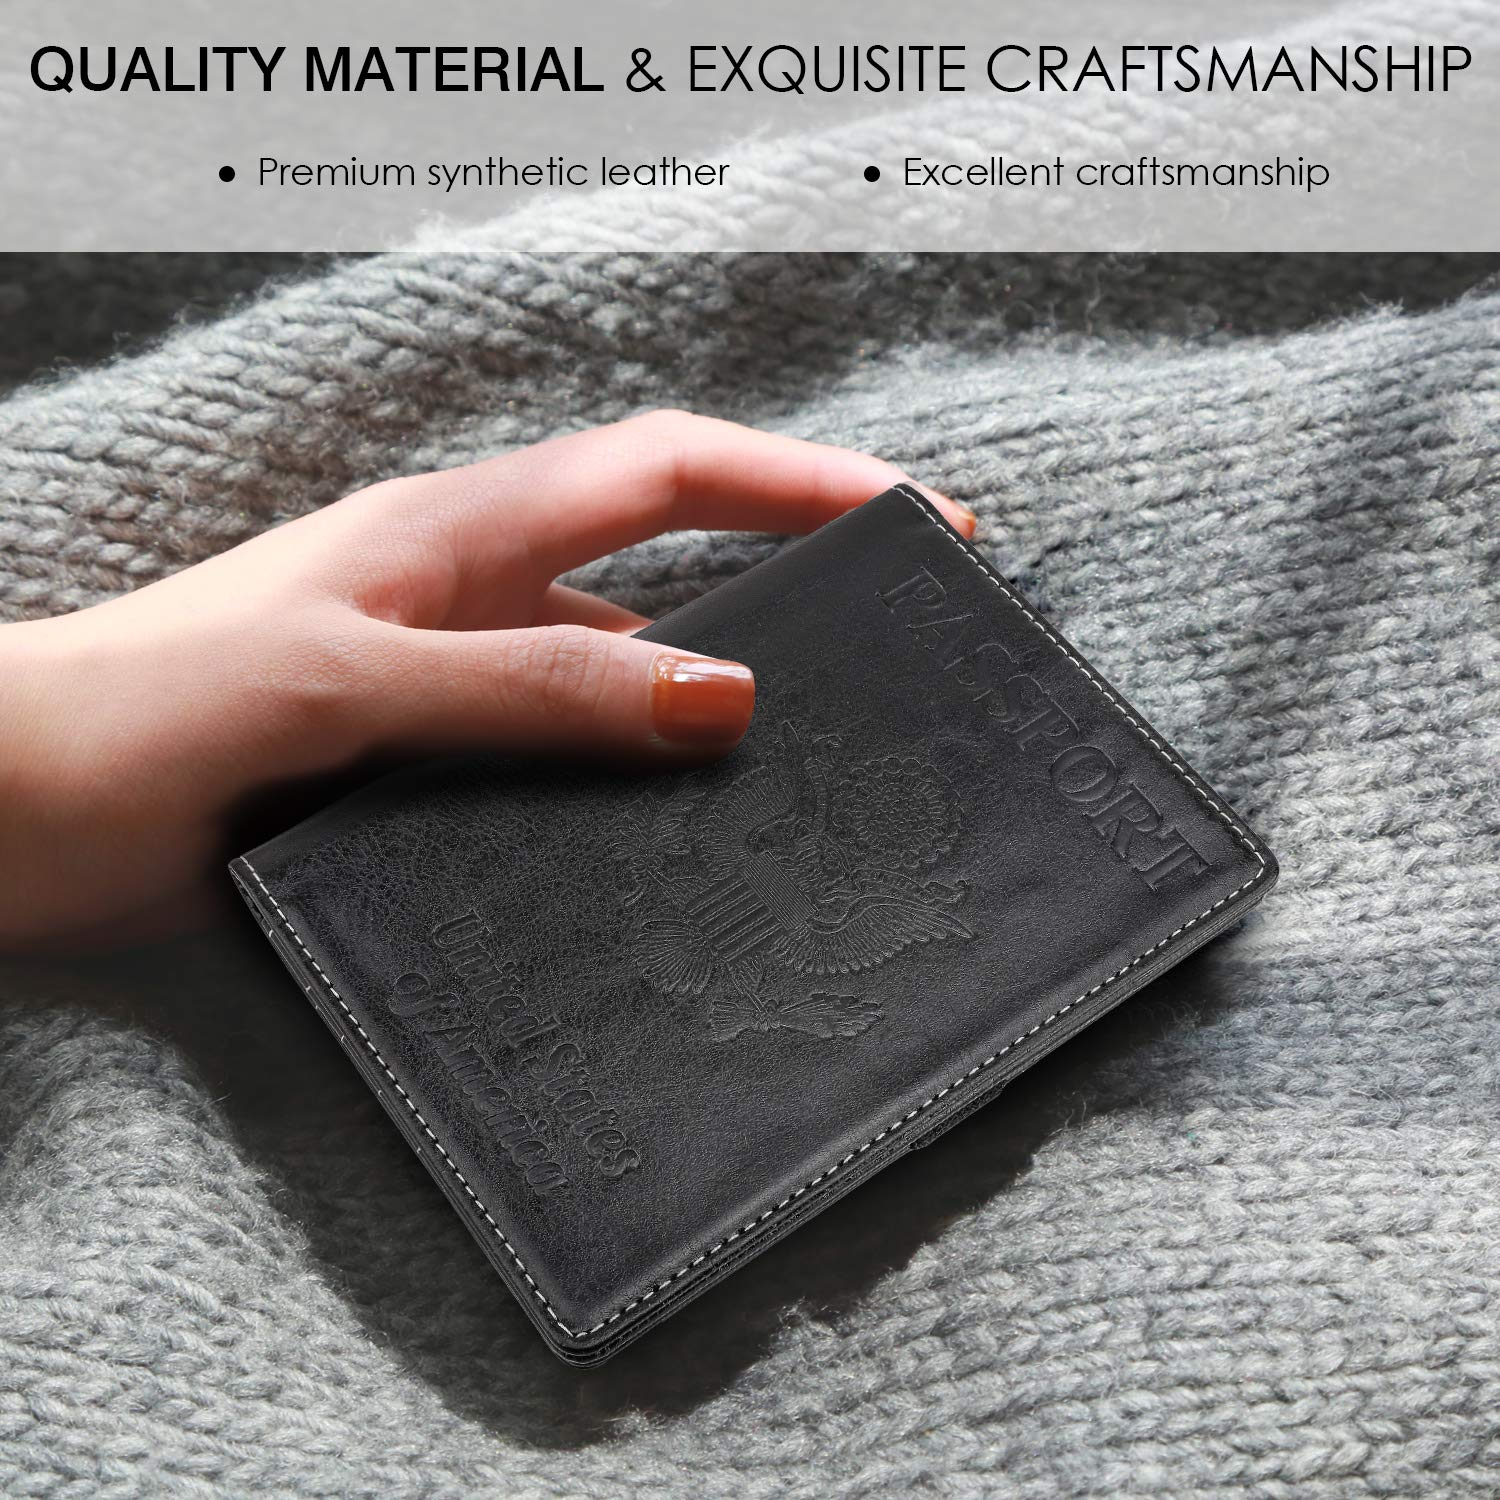 US Great Seal Black PU leather Travel Case Cover for Passport MoKo Passport Holder